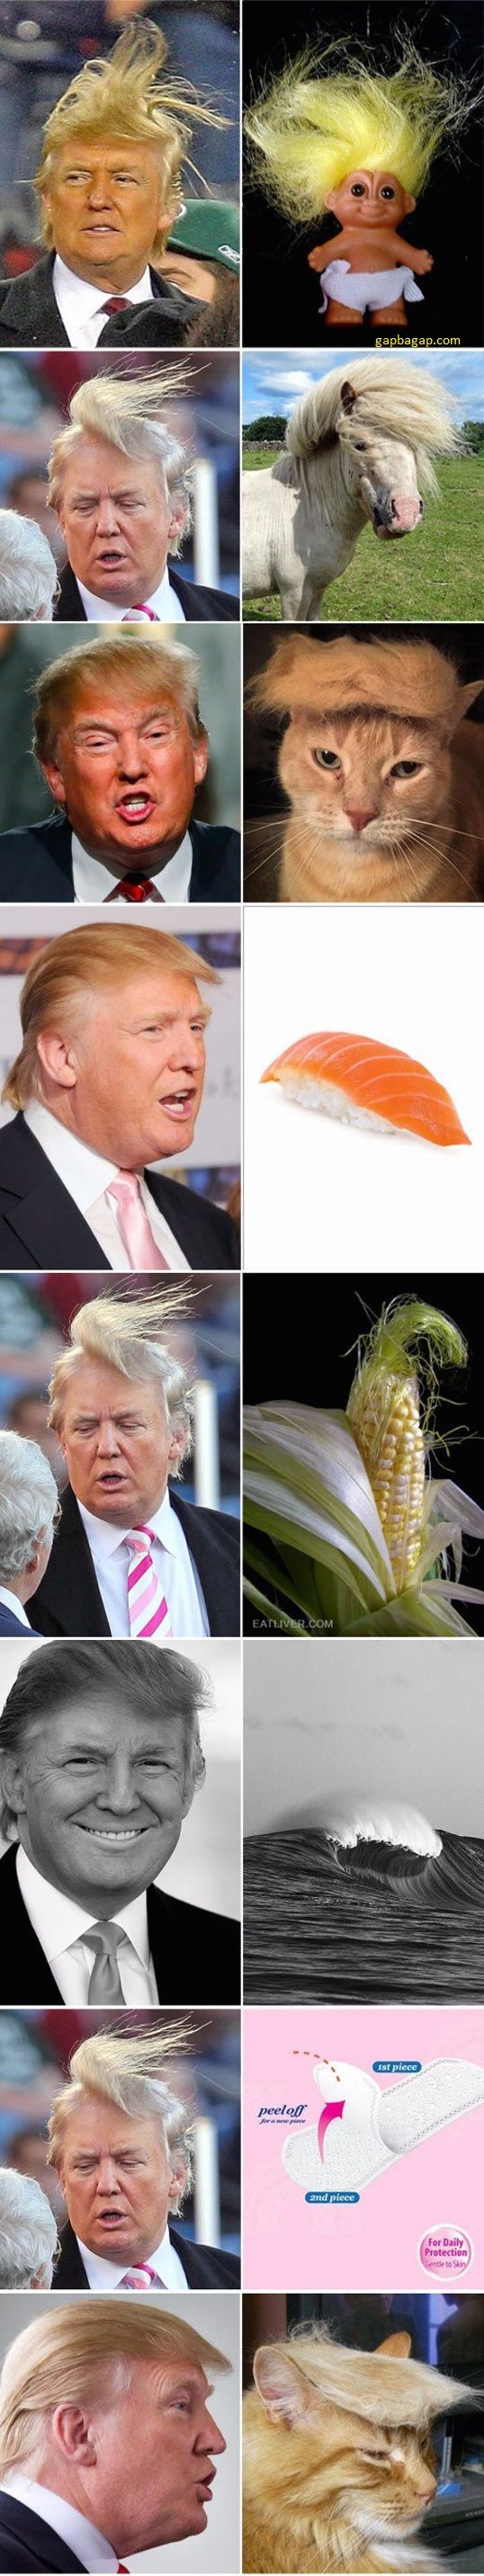 Funny Pictures Of Donald Trump's Hair Style